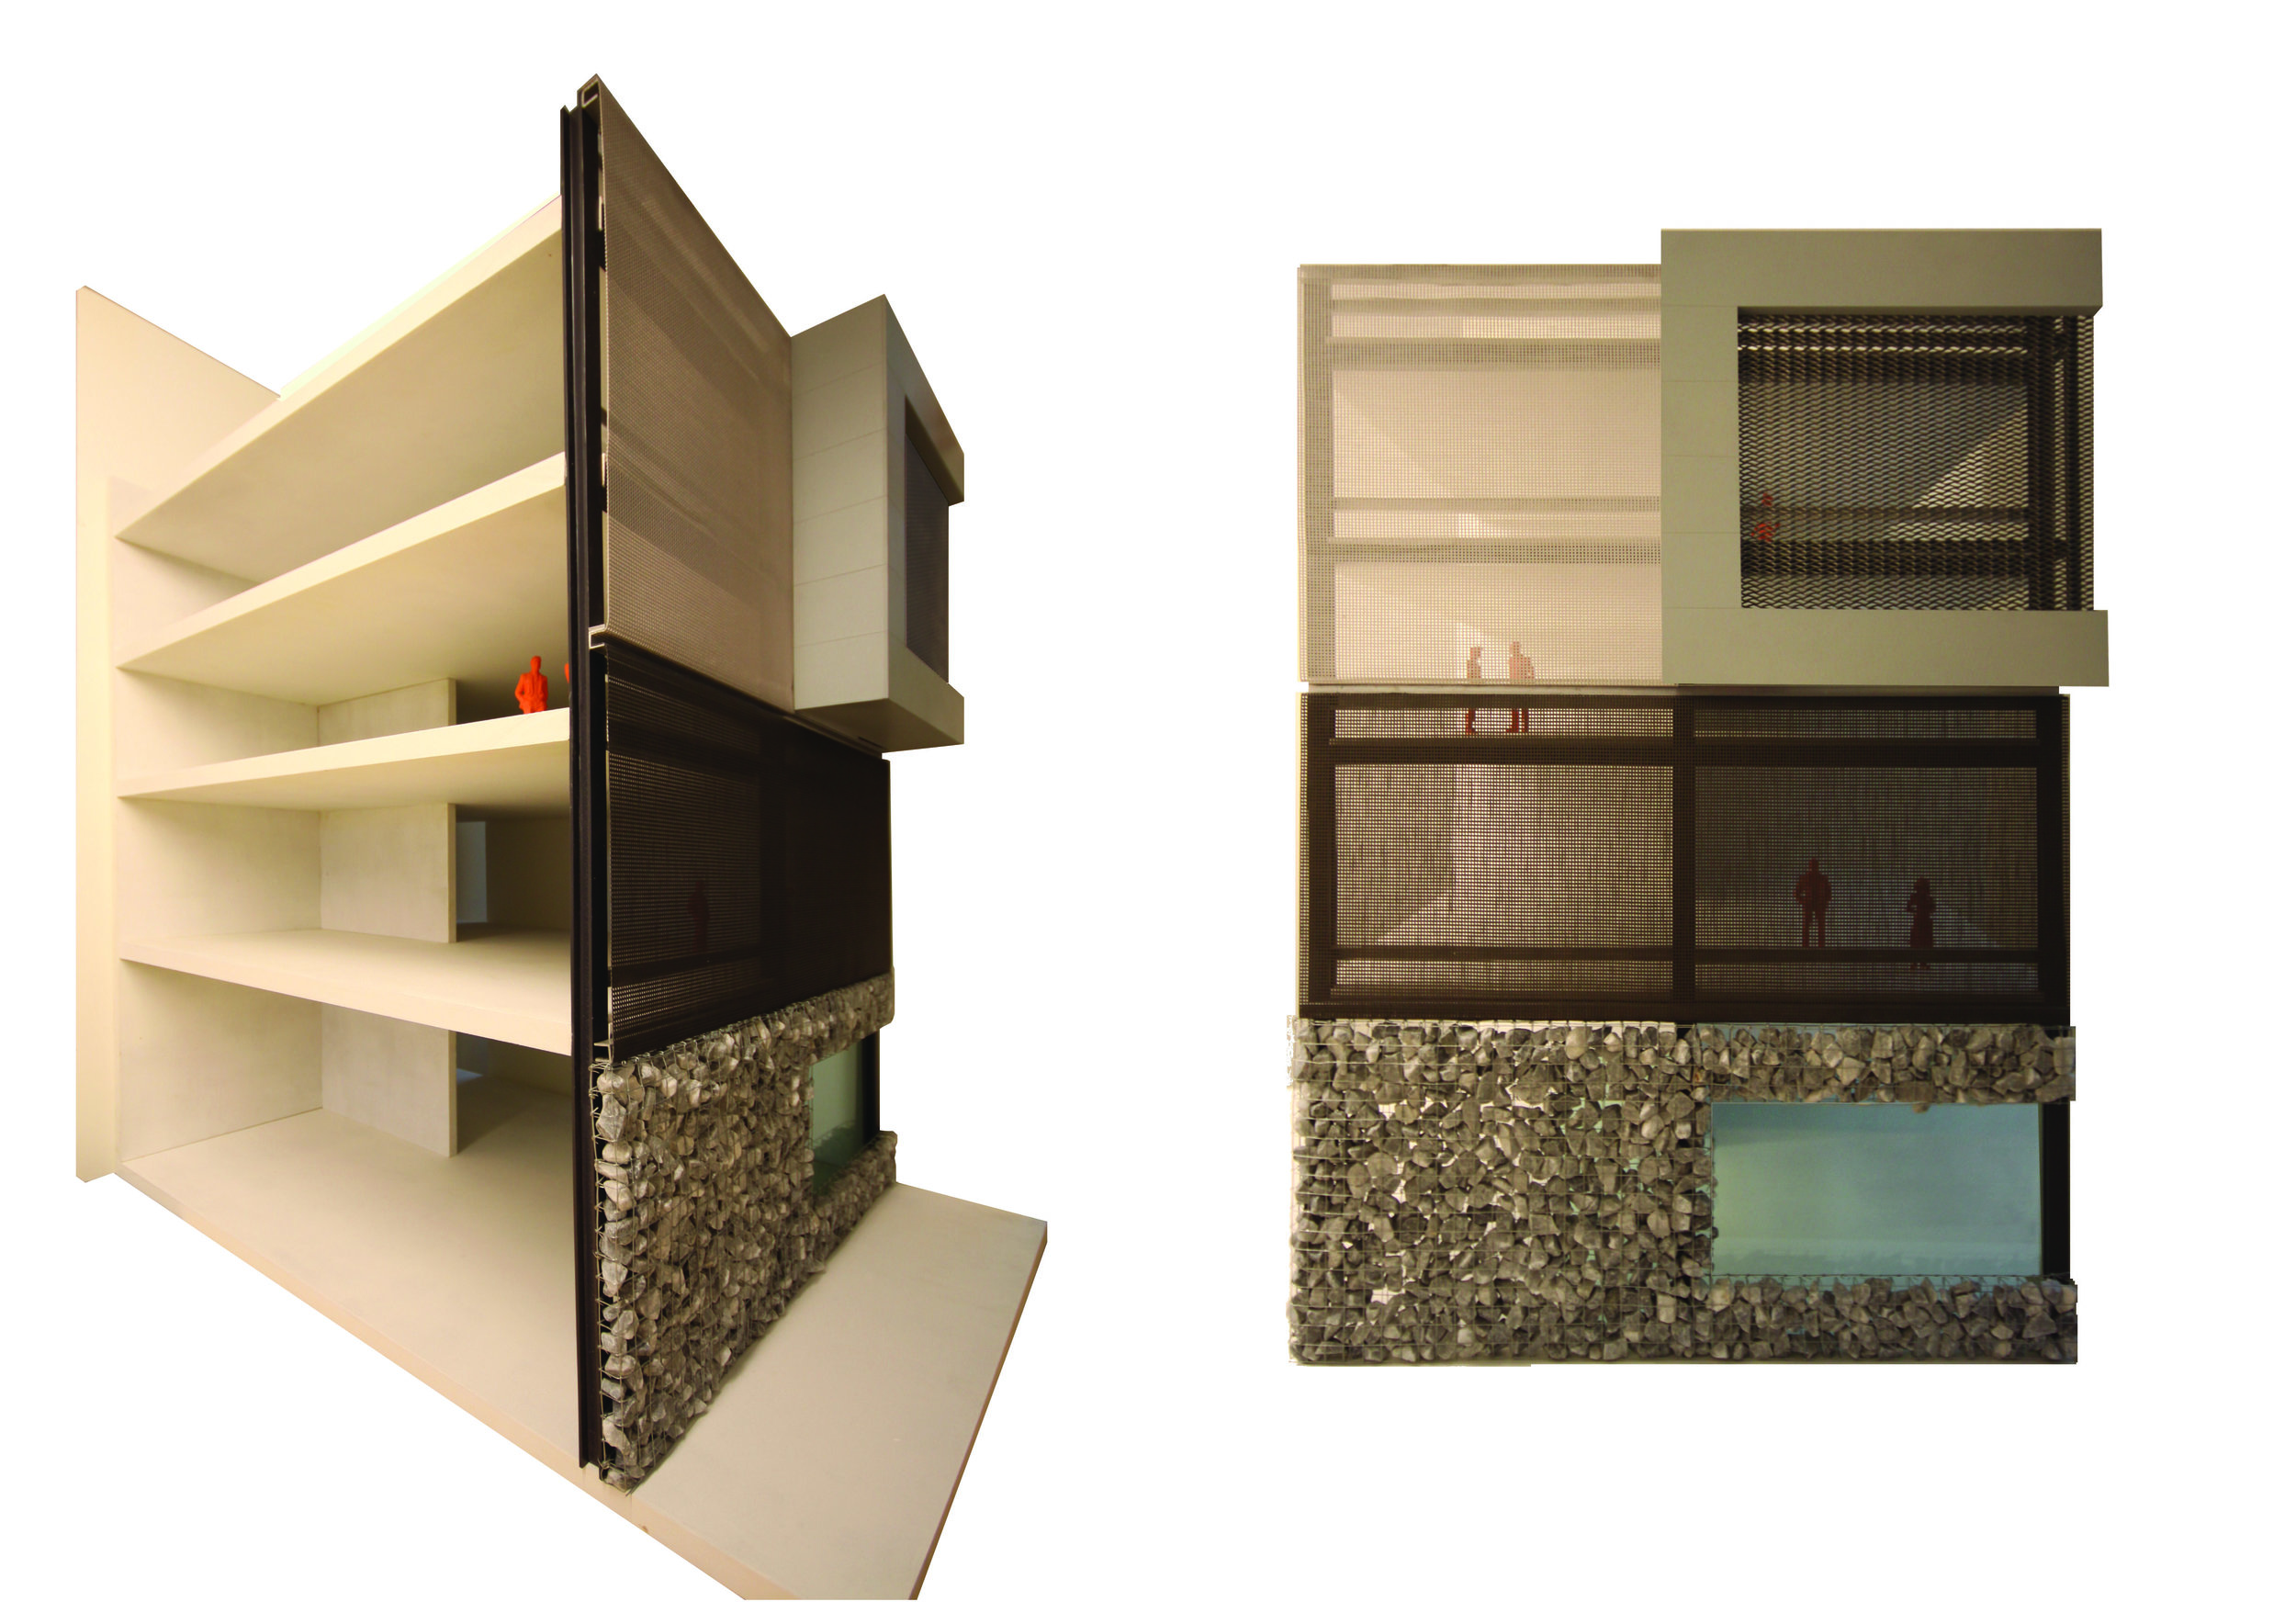 mock-up of the facade with the three distinct layers: stone, dark colored mesh and light colored mesh